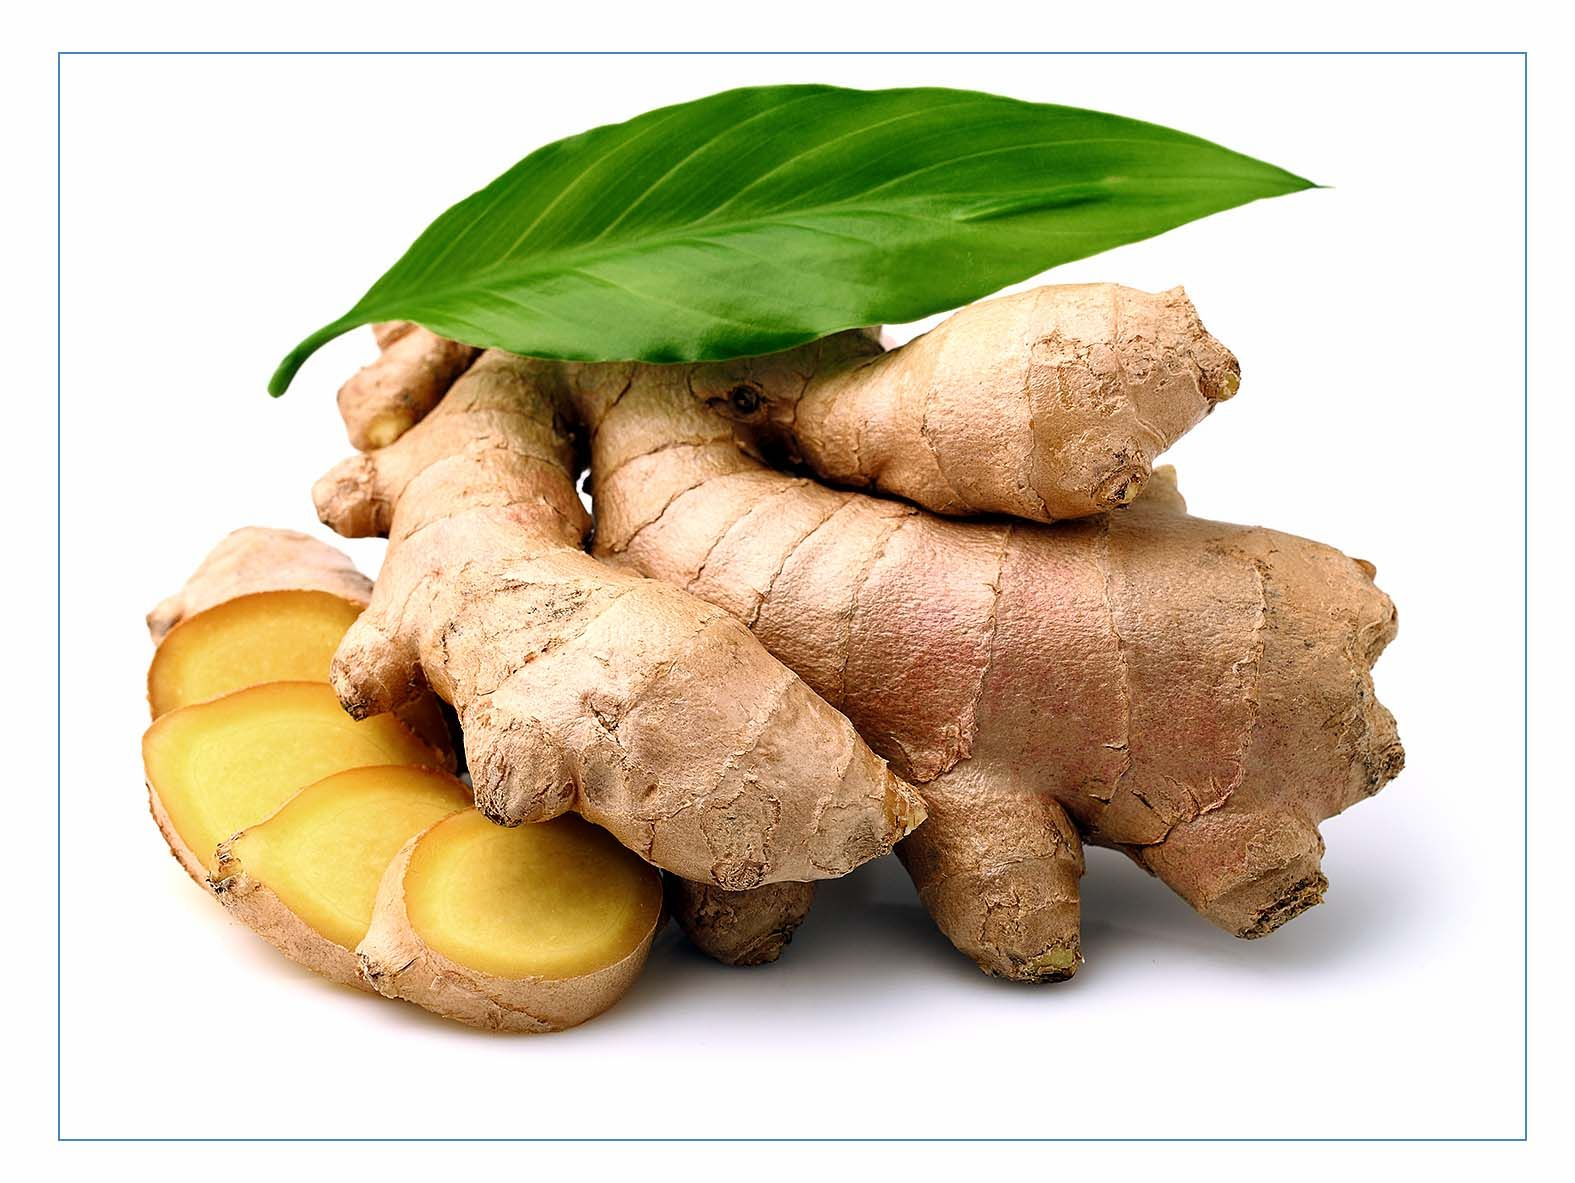 7 Health Benefits of Ginger About Ginger:  Ginger is a flowering plant , ginger root or simply ginger, is widely used as a spice or a traditional  medicine. Each ginger plant can grow up to three feet high and produce 2-5 sections of ginger, which can be harvested year-round. After a ginger root is broken off from the main plant it is washed and dried in the sun. Once dried, it can be used for cooking or medicinal purposes. See more..naturebring.com/blog/